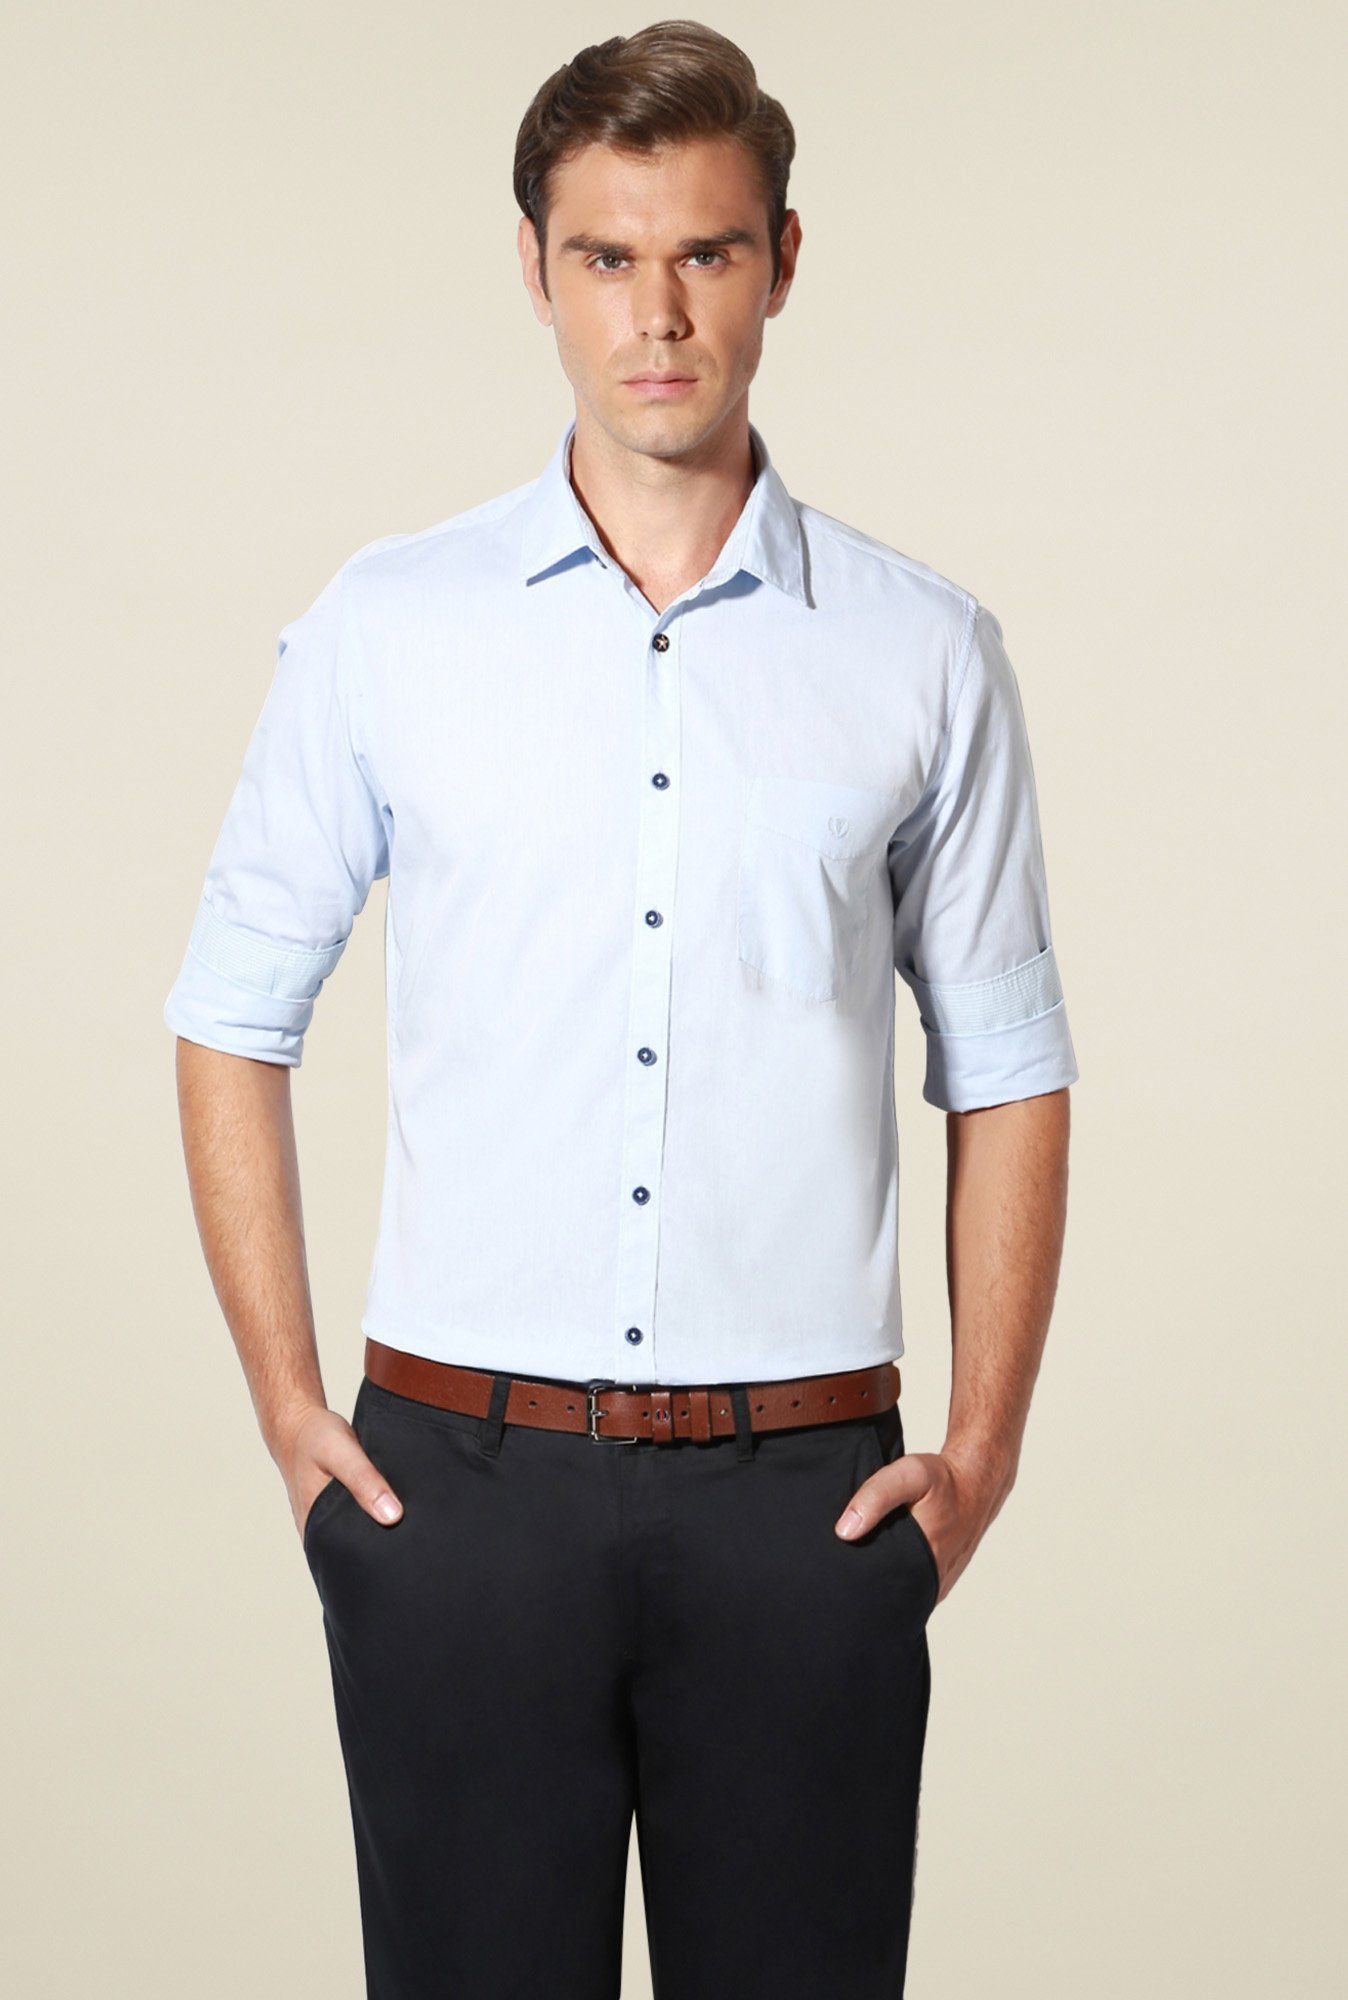 Van Heusen Light Blue Cotton Shirt